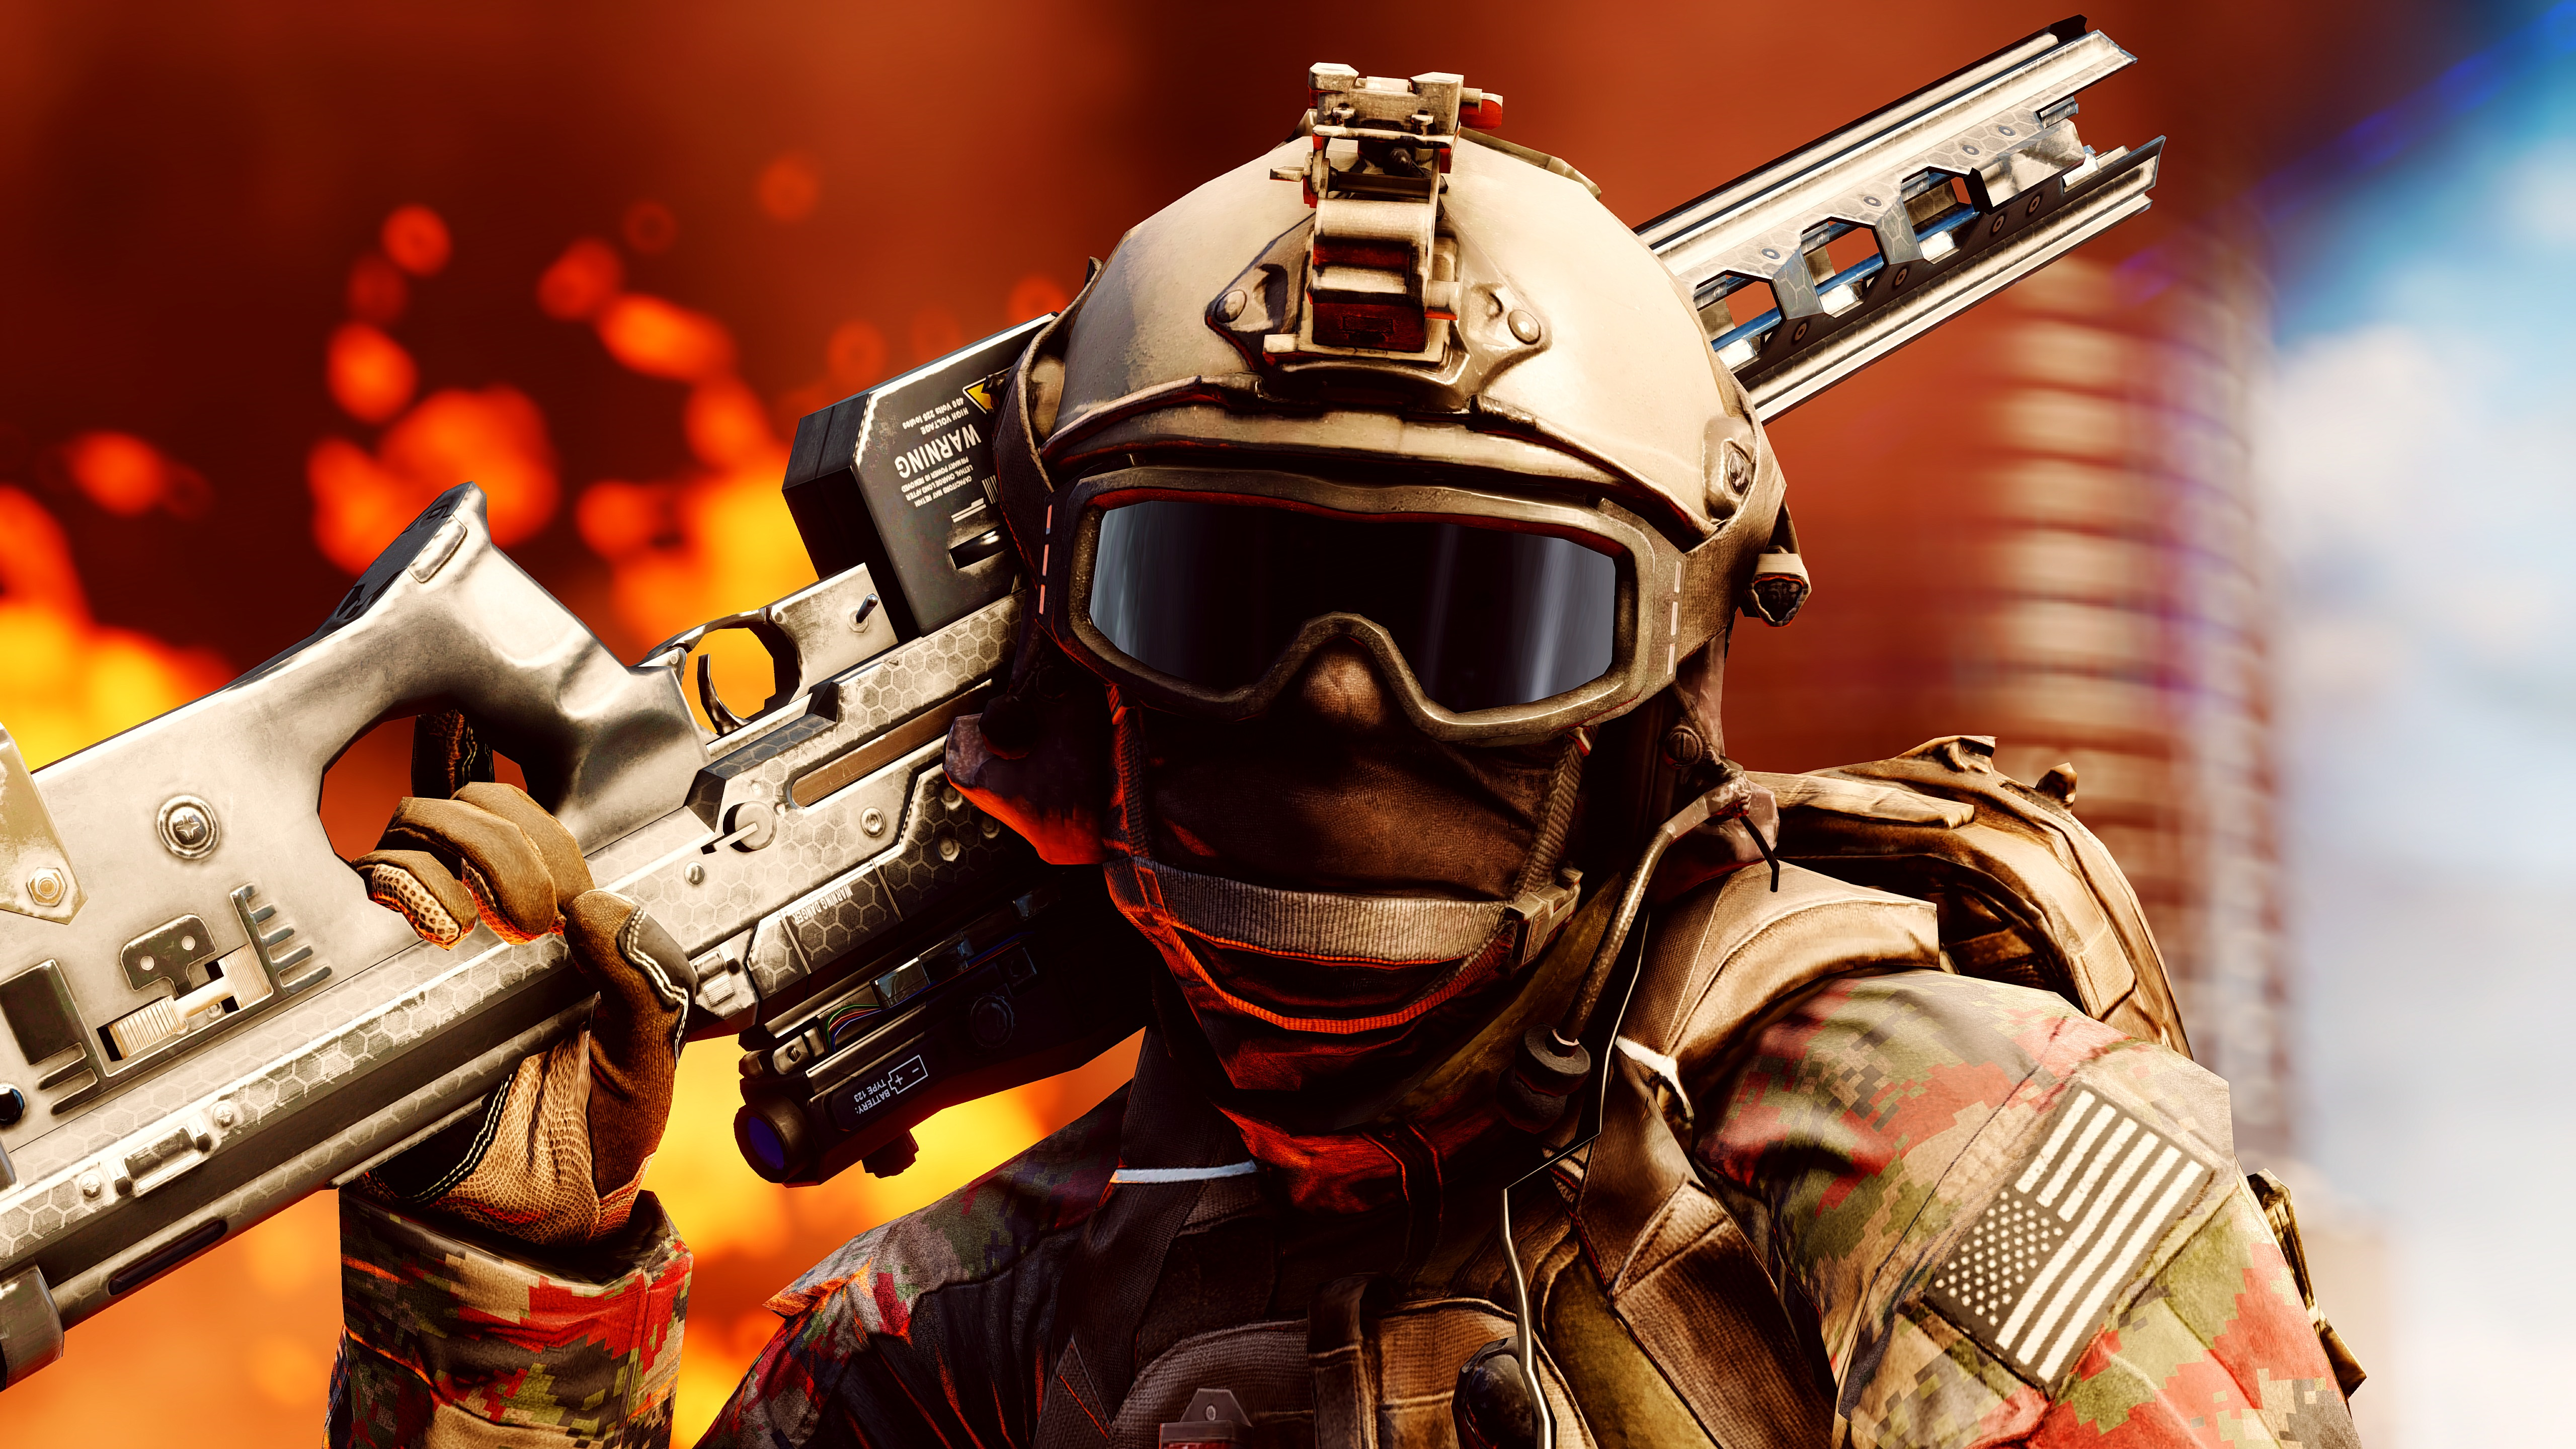 Battlefield 4 Sniper Hd Games 4k Wallpapers Images